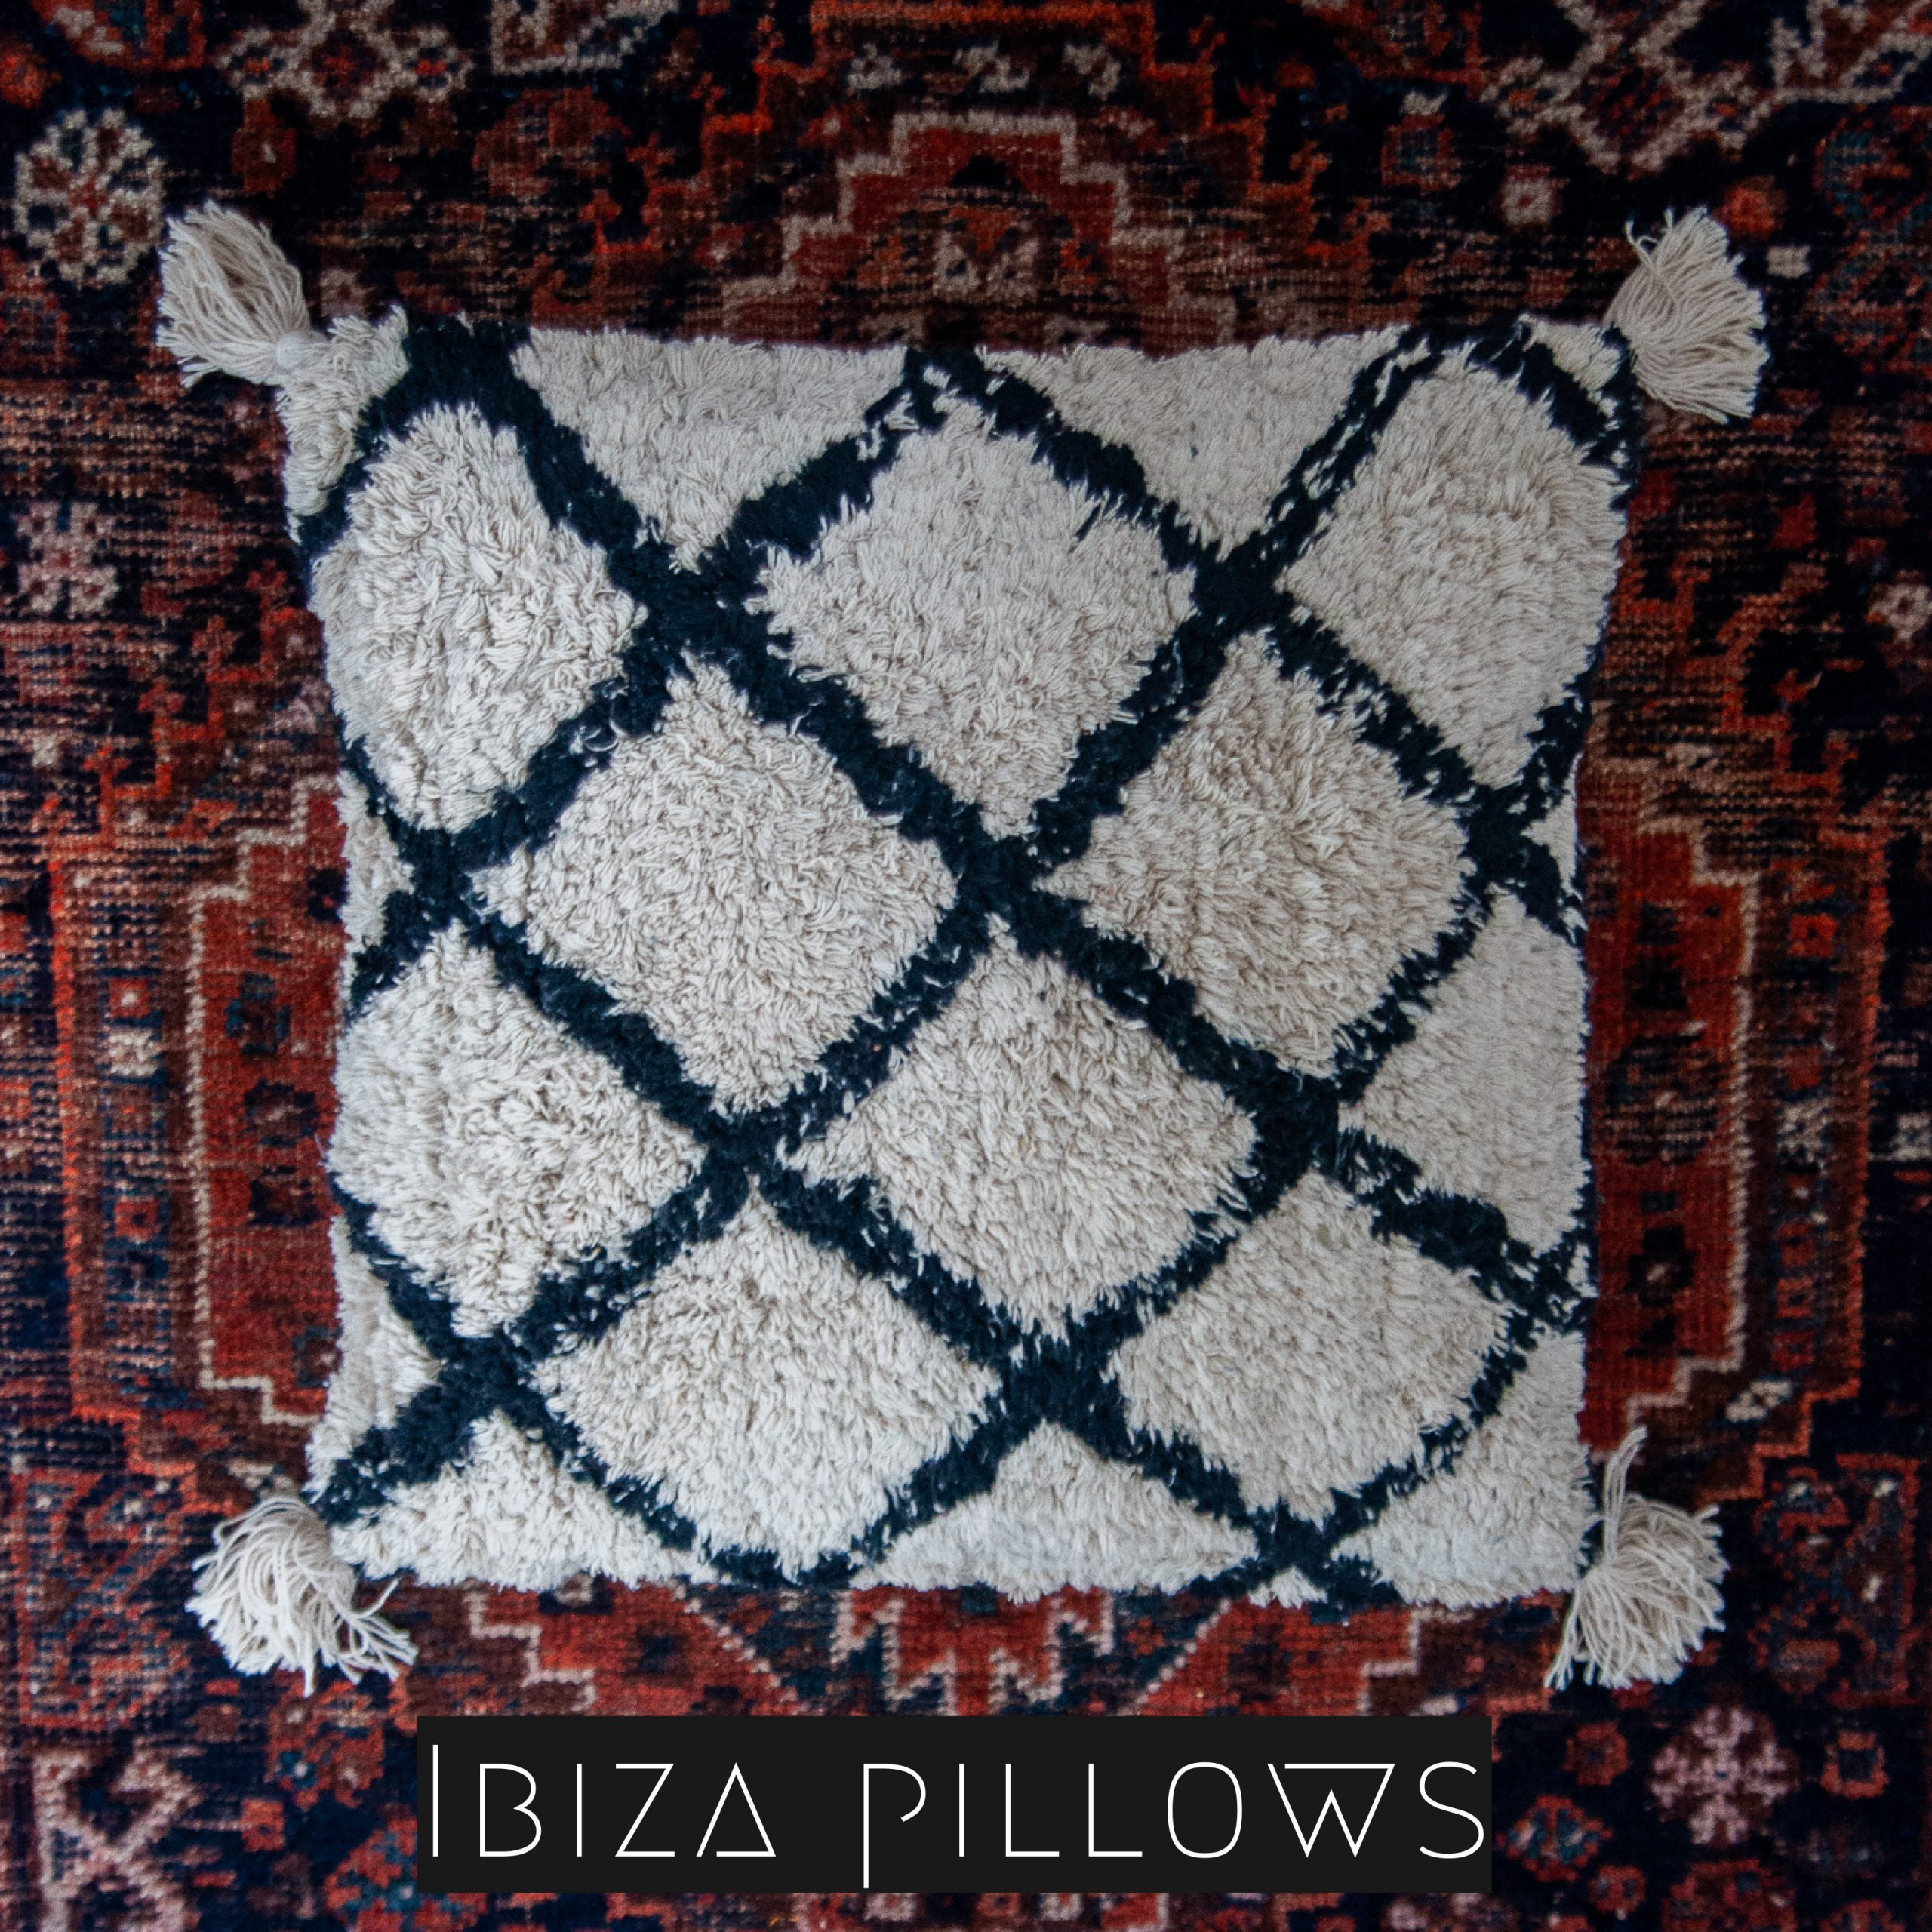 Ibiza pillows